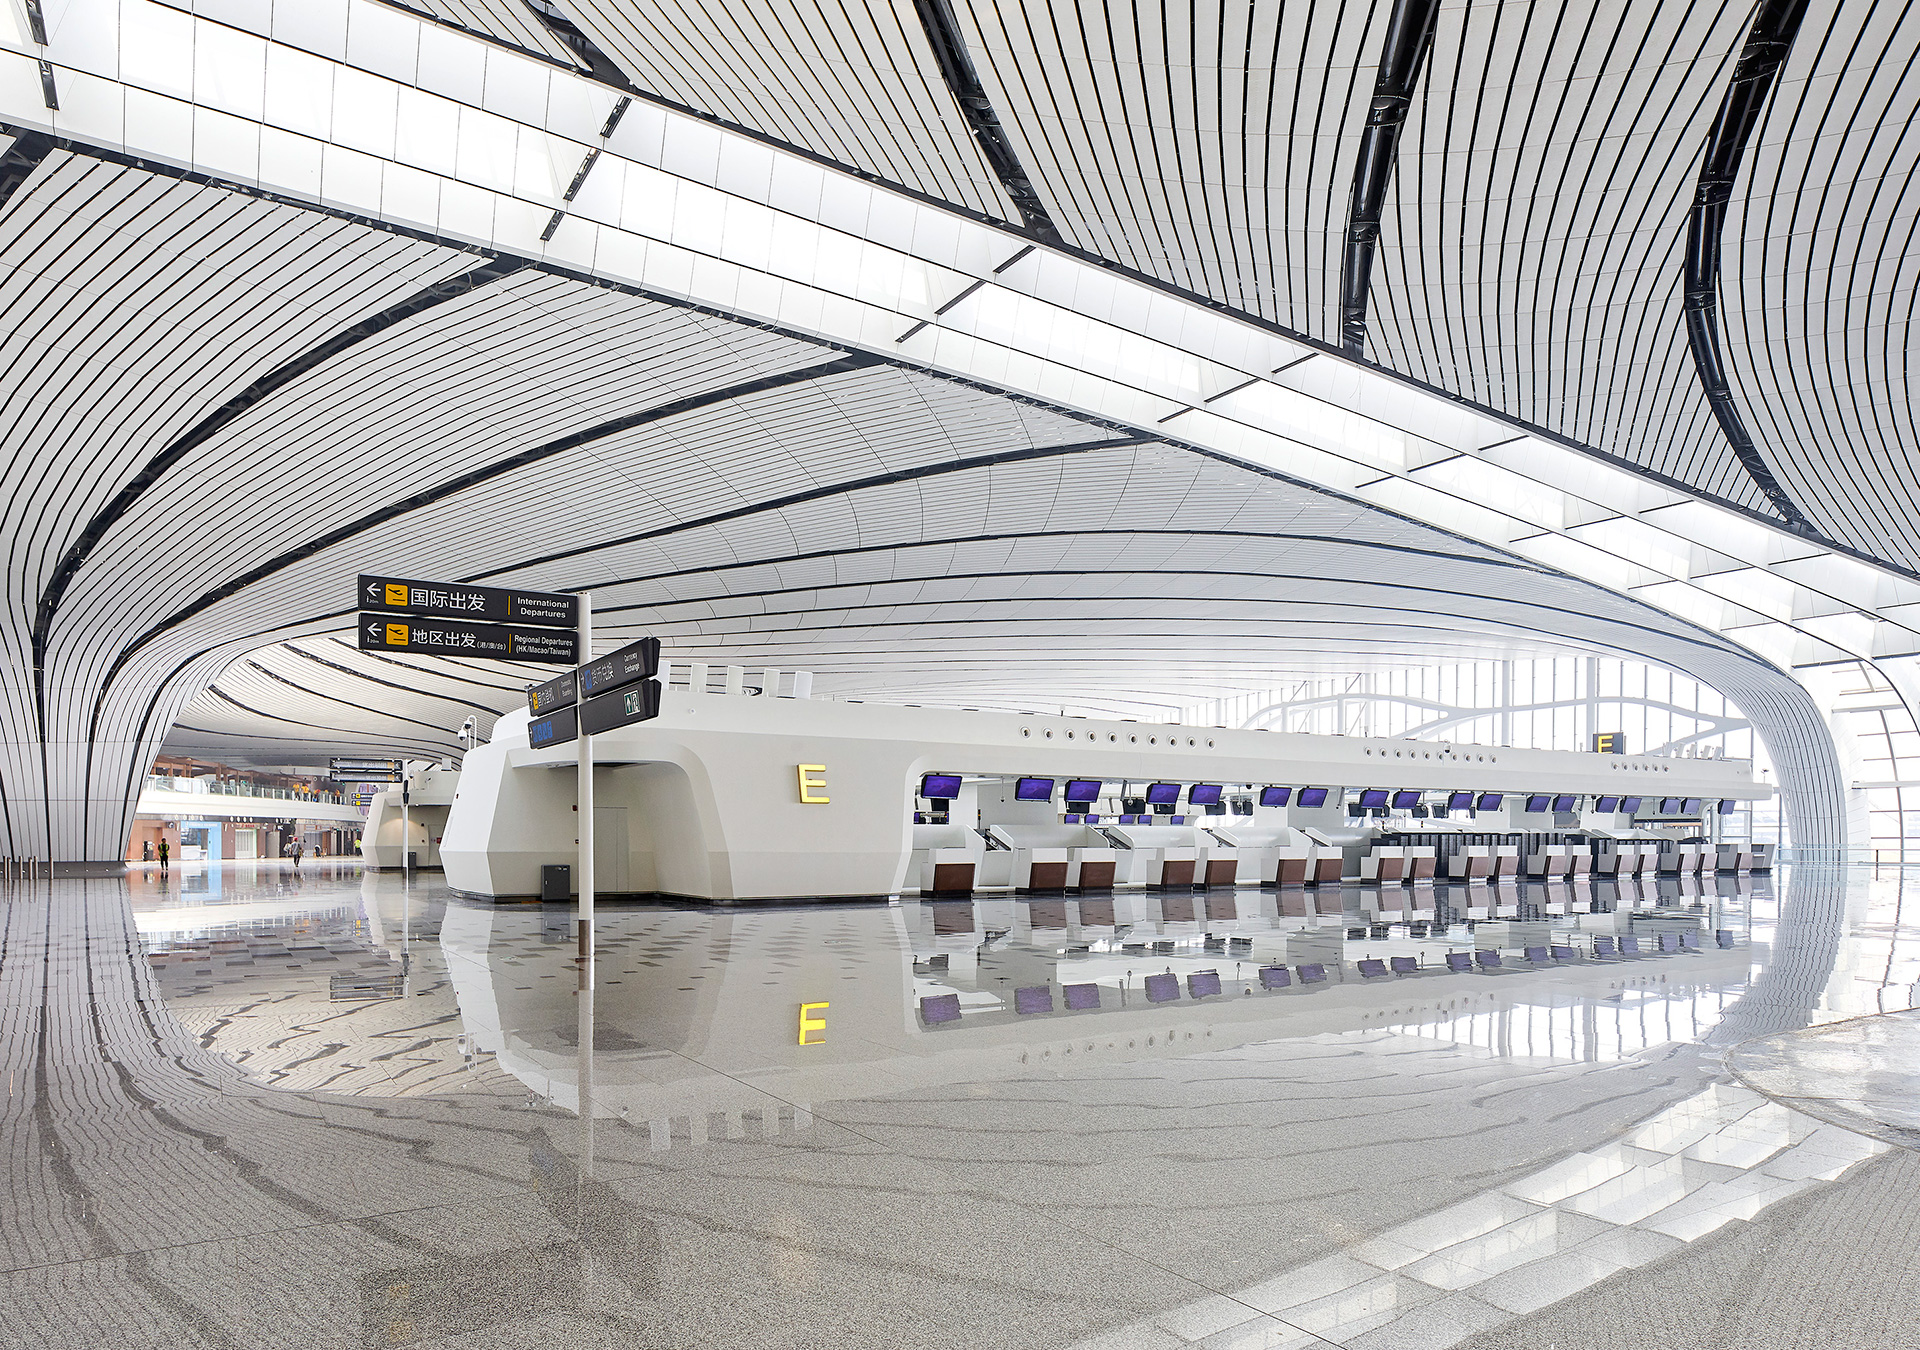 Inside the Beijing Daxing airport | Beijing Daxing International Airport | Zaha Hadid Architects | STIRworld